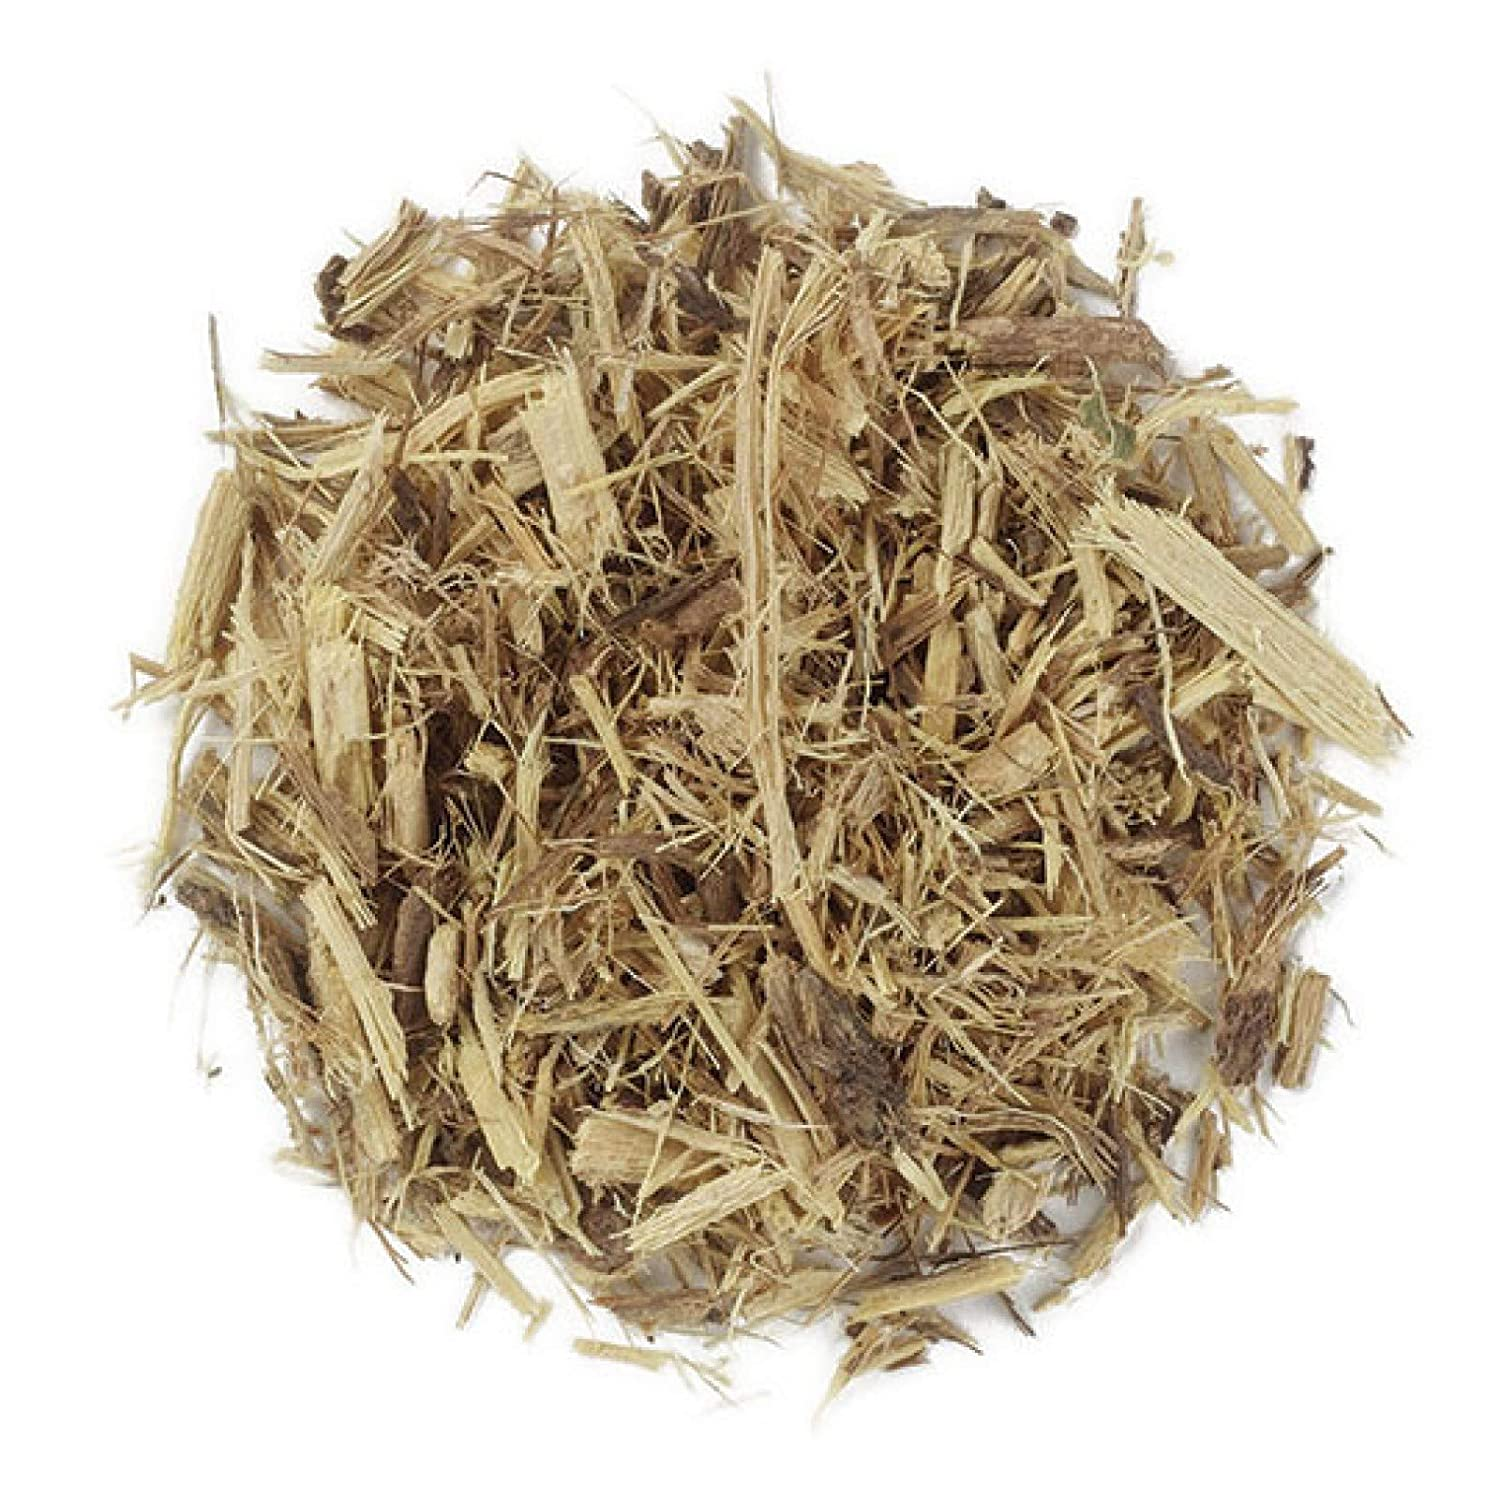 Frontier Co-op Licorice Root, Cut & Sifted, Certified Organic, Kosher   1 lb. Bulk Bag   Glycyrrhiza species